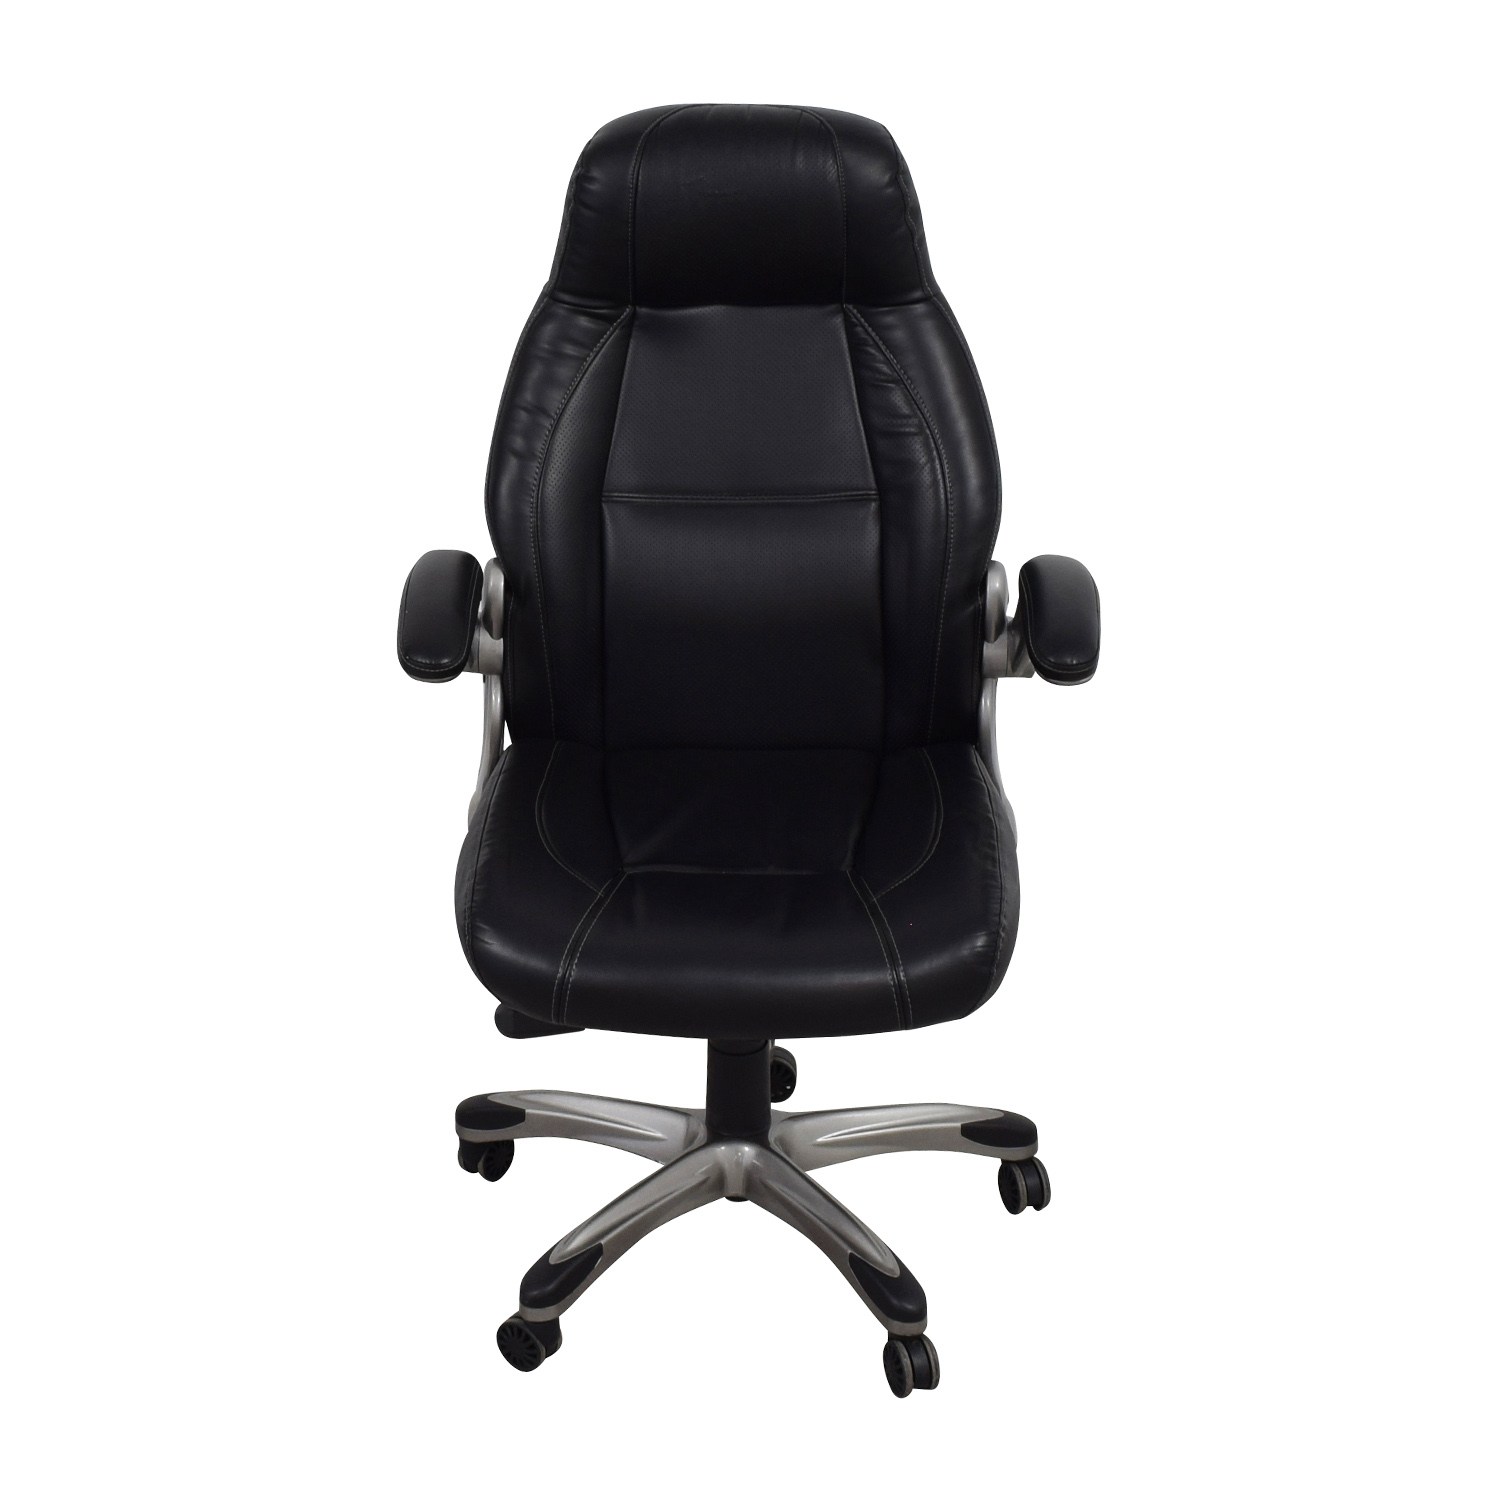 Staples Staples Torrent High-Back Executive Chair in Black